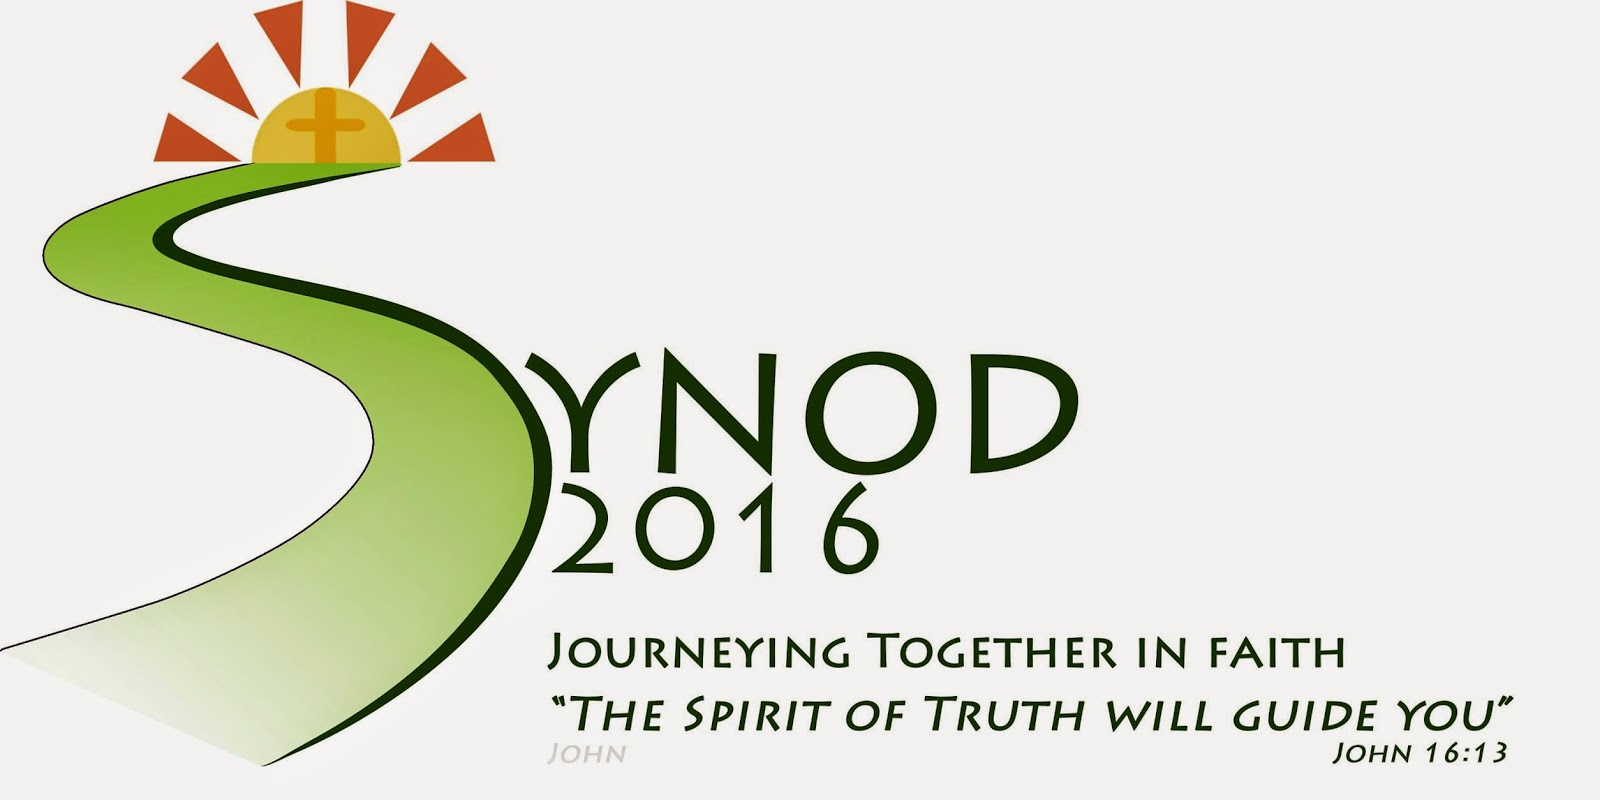 Sacred space102fm january 2015 2015 promises to be an exceptional year for all communities in the diocese of limerick as the work of the synod will affect every single community and malvernweather Gallery